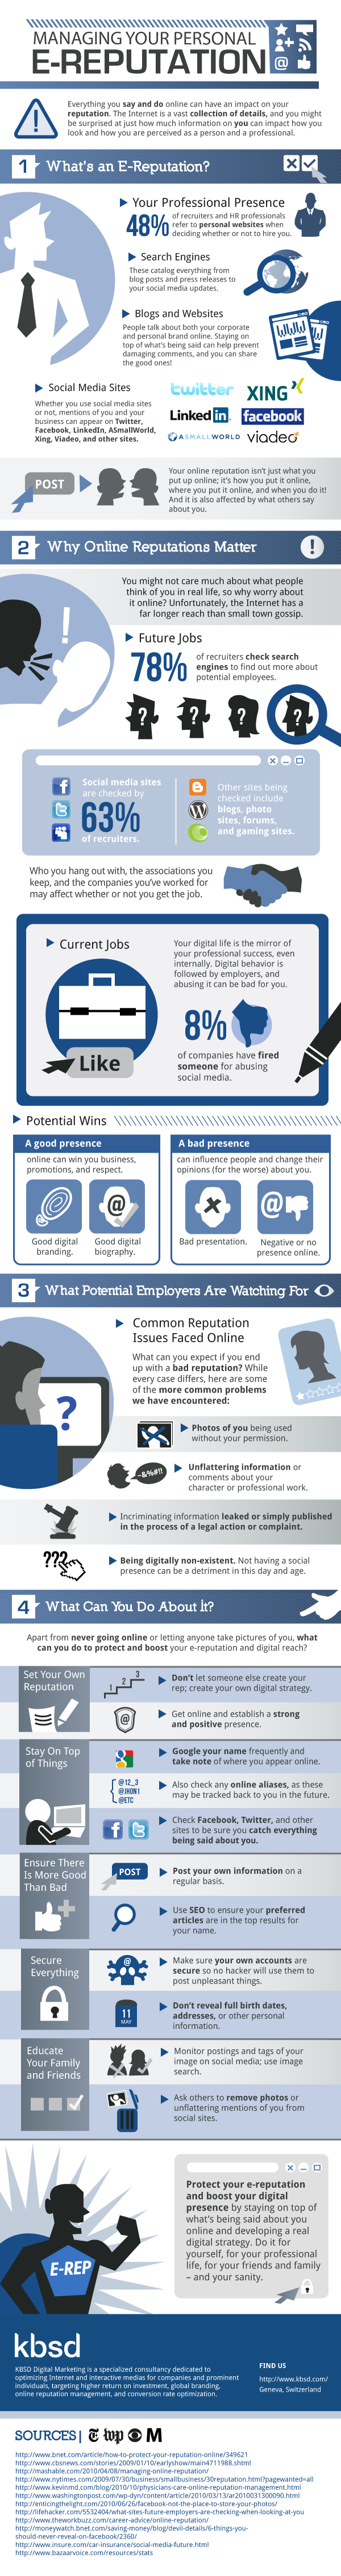 Managing Your Personal E-Reputation